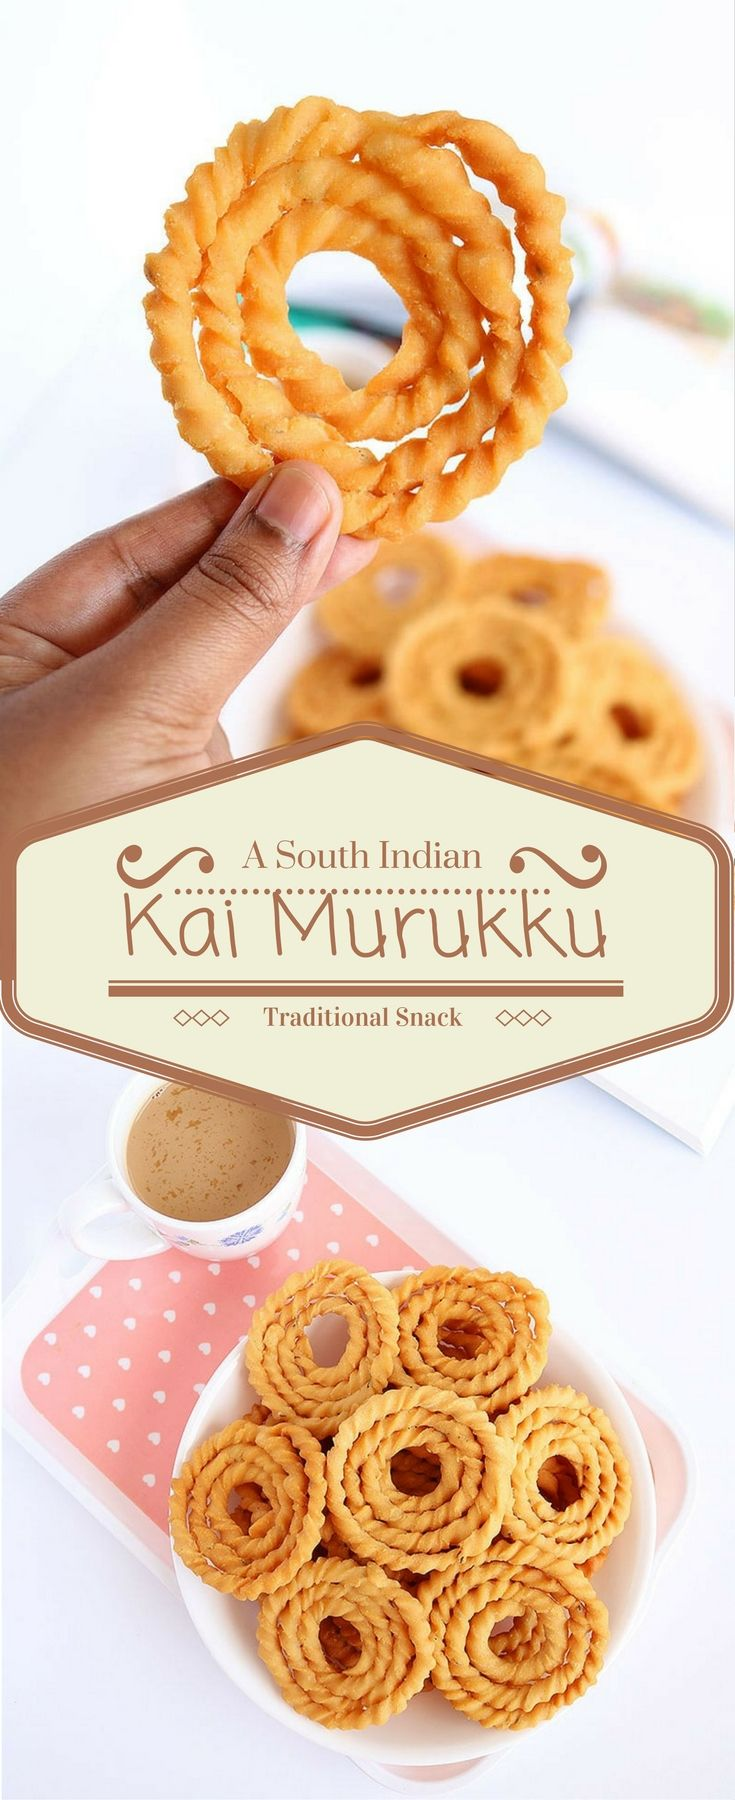 Kai Murukku is a classic South Indian snack recipe made primarily with rice and urad dal flour and painstakingly shaped by hand.